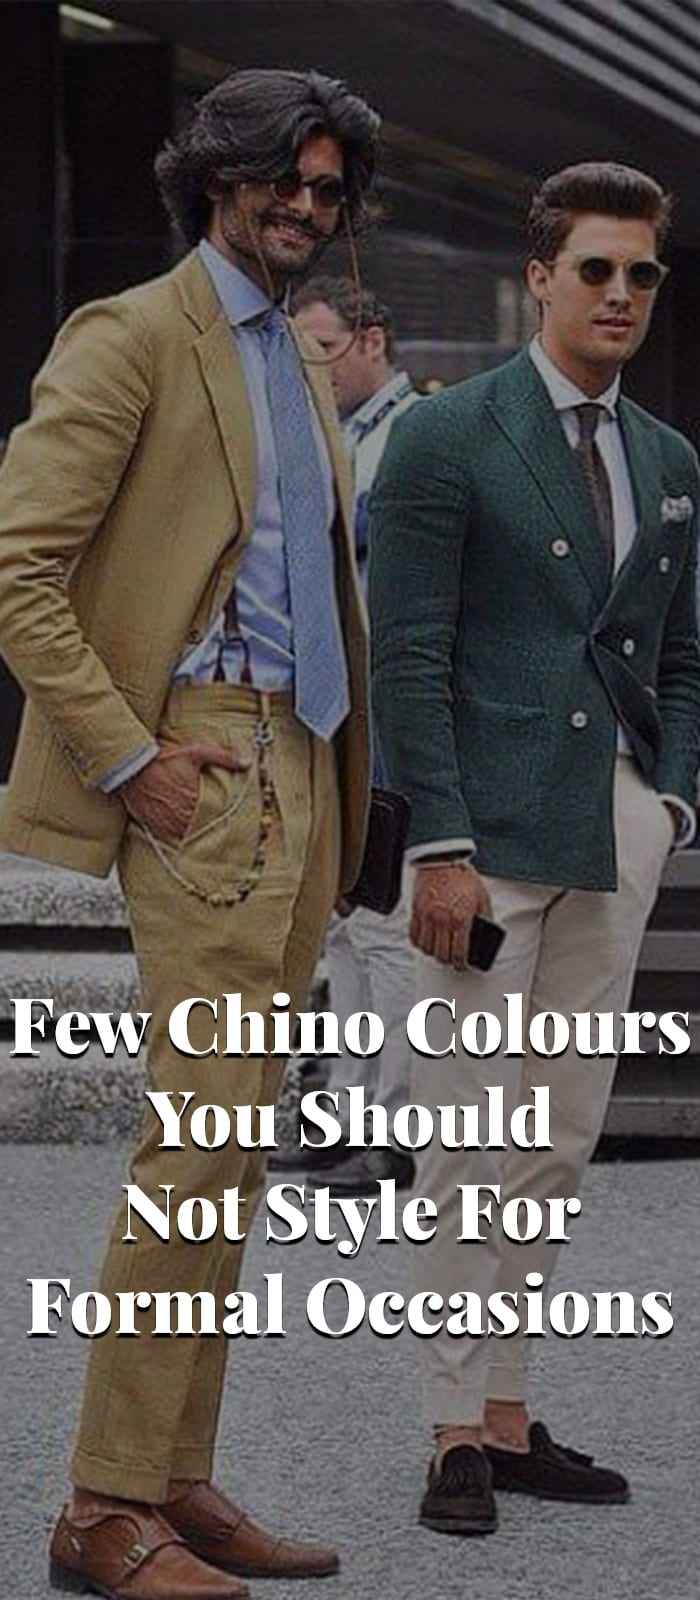 Few Chino Colours You Should Not Style For Formal Occasions